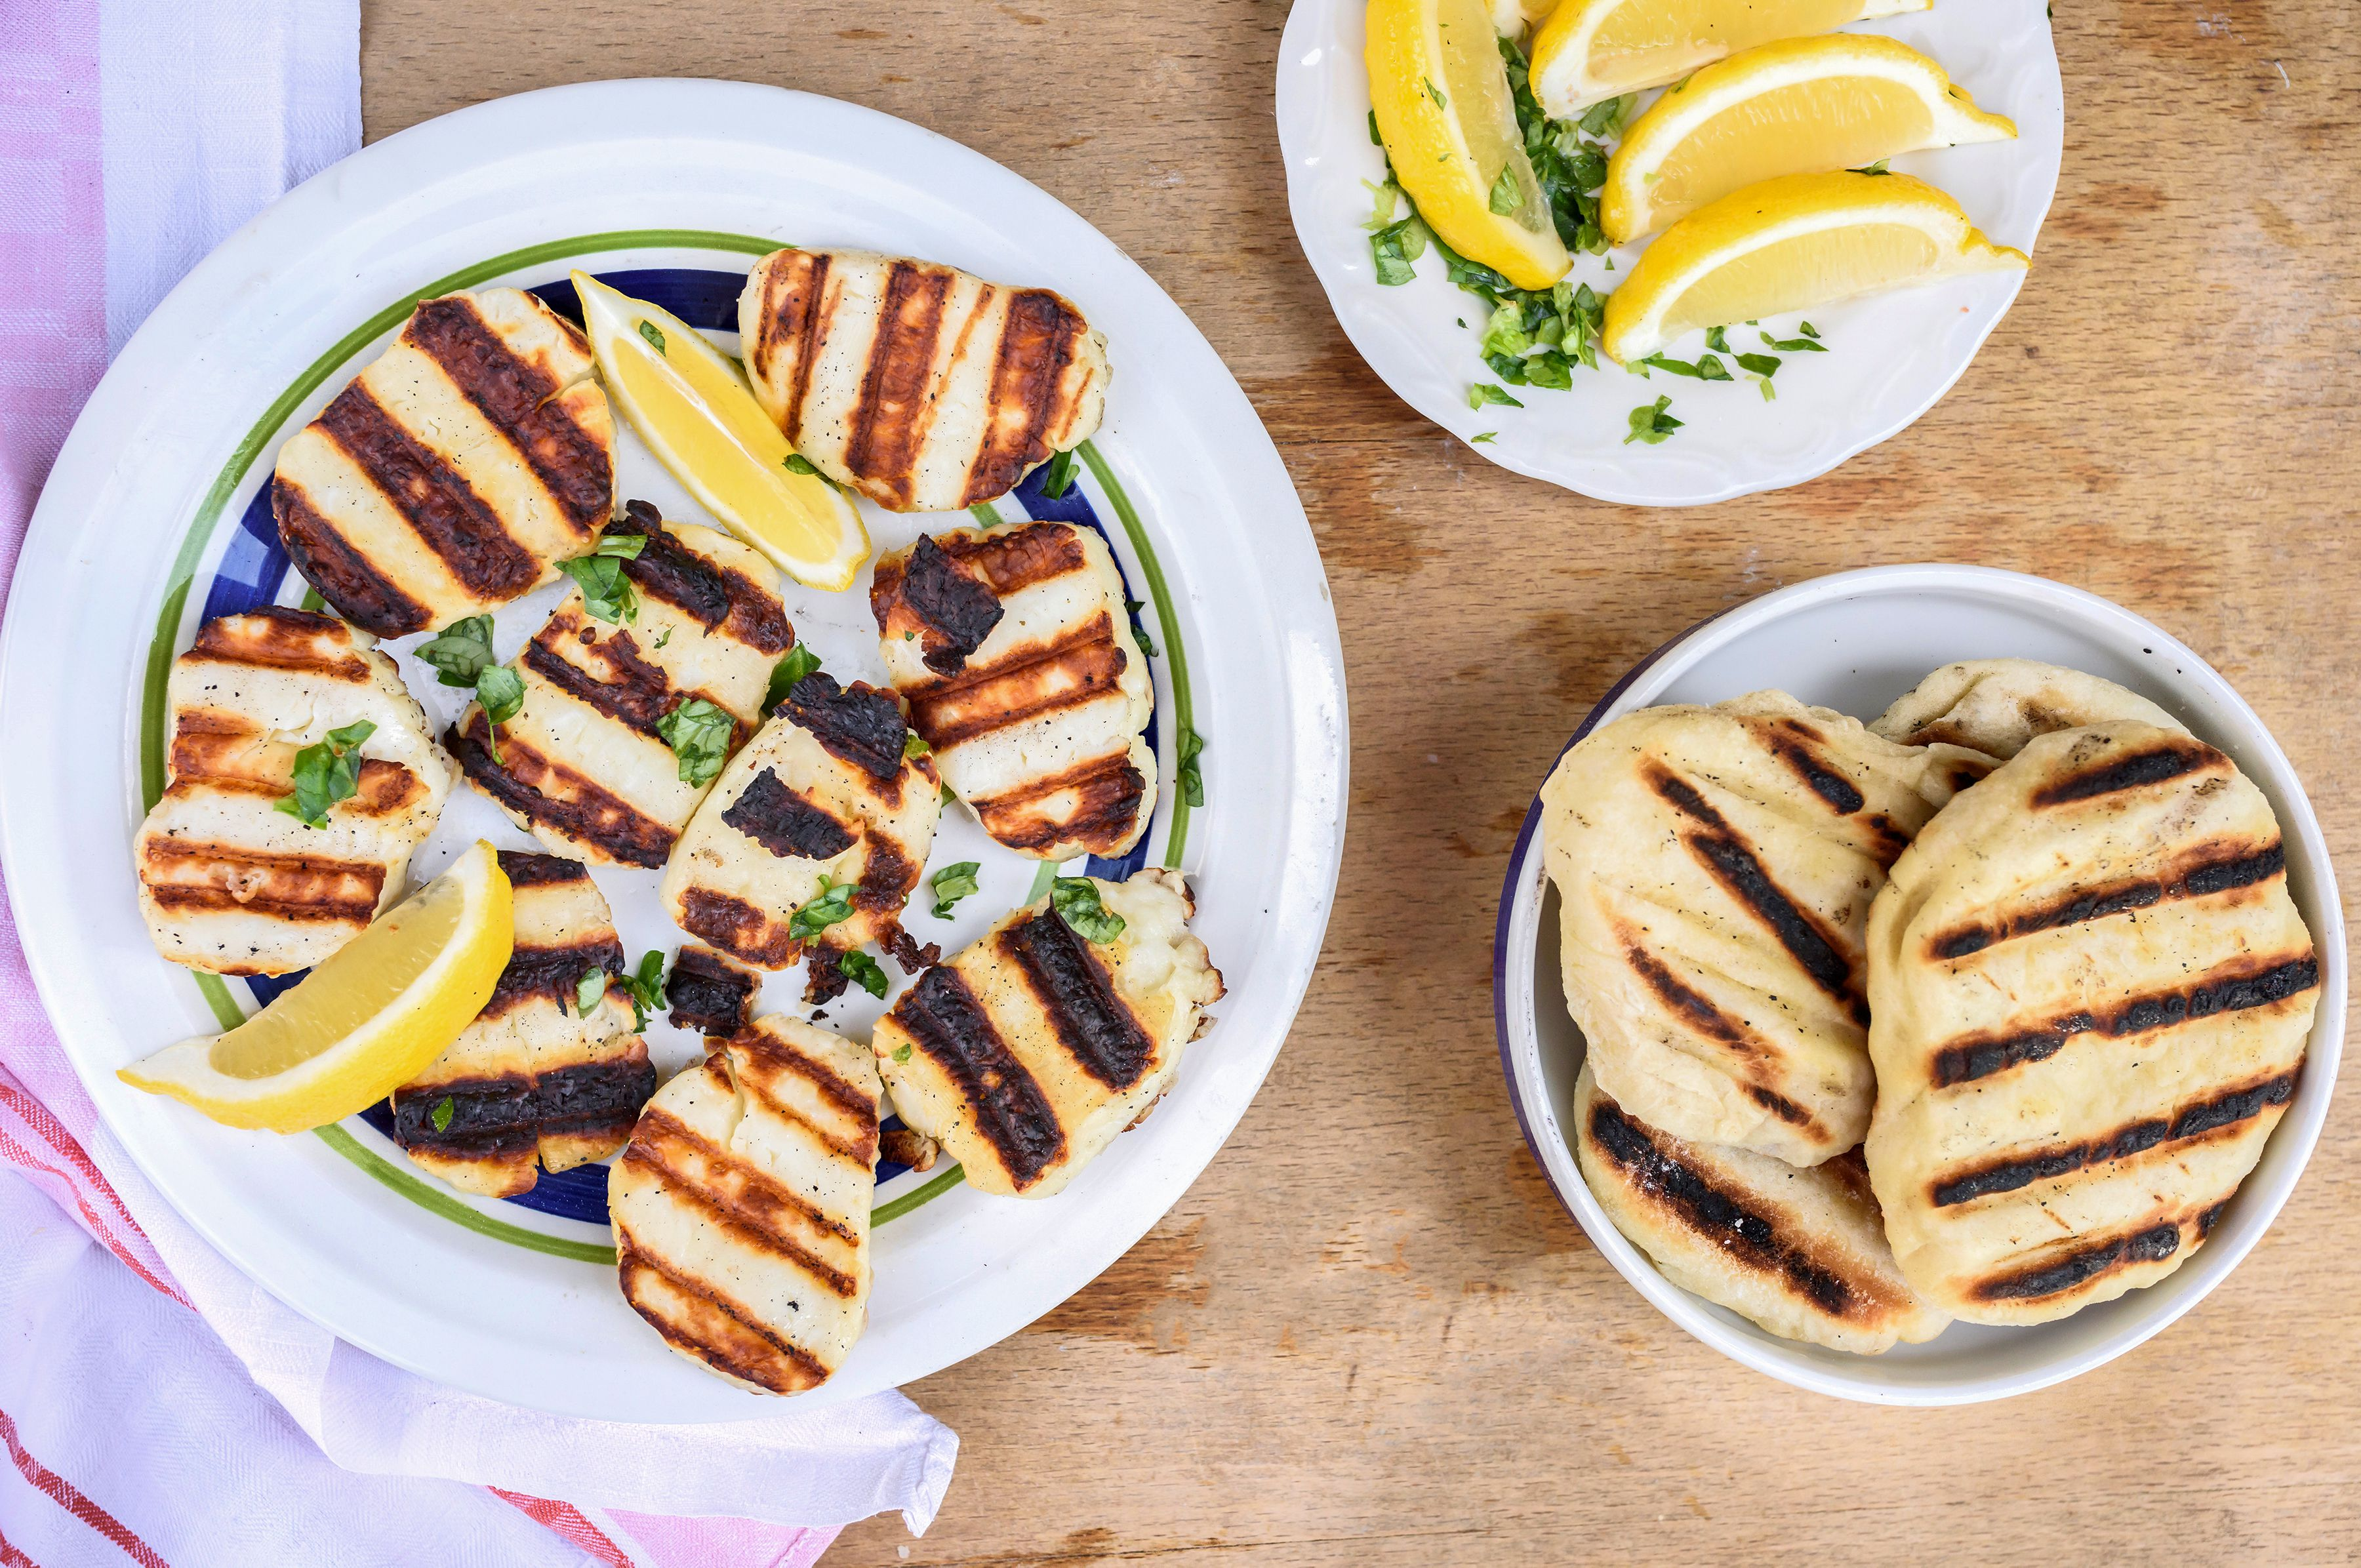 Grilled halloumi cheese on a plate with lemon wedges and herbs